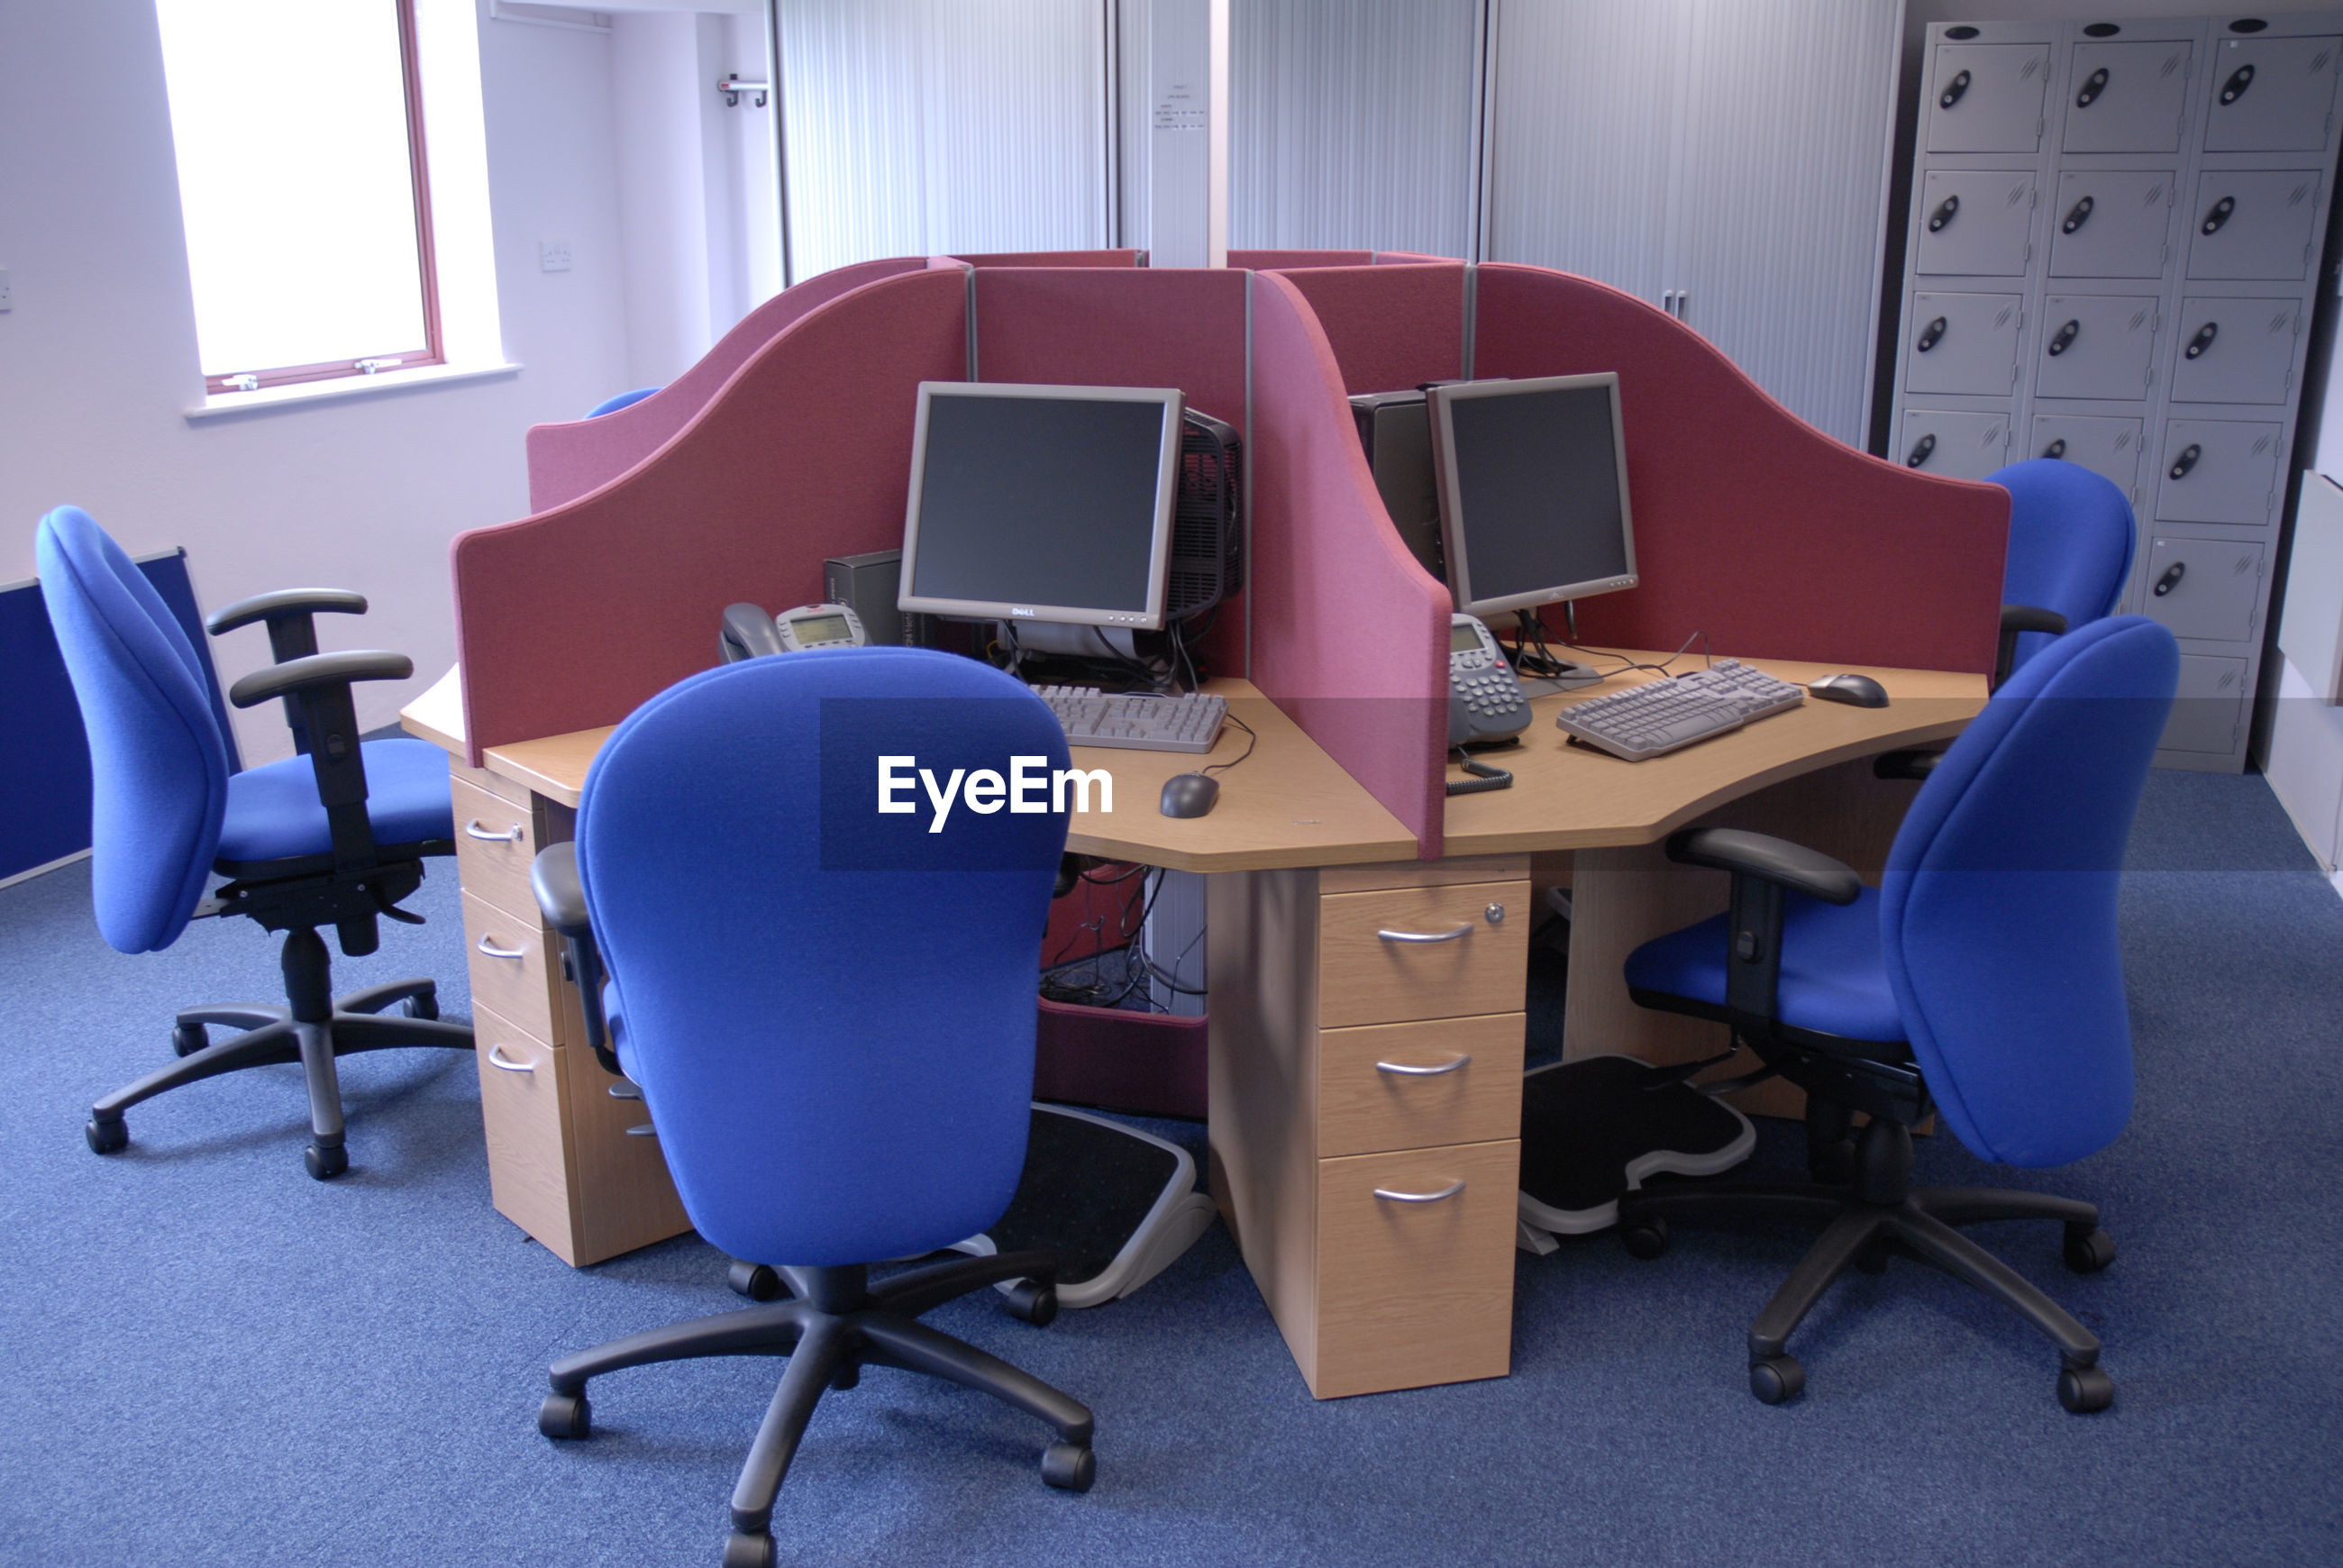 High angle view of chairs and computers in office